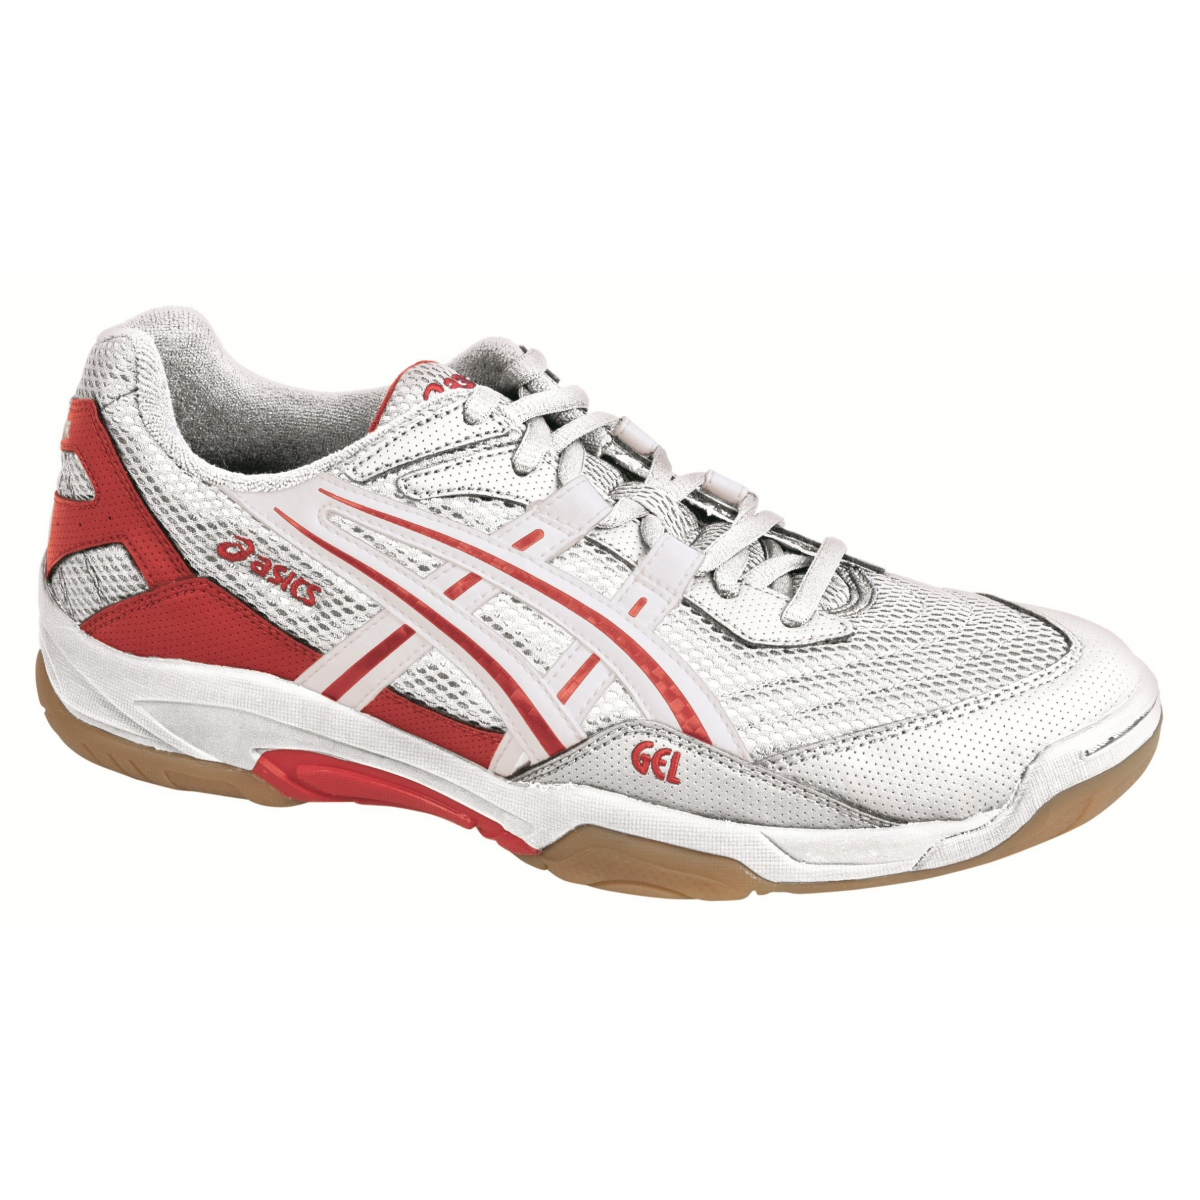 Asics Gel Hunter 2 weiss Indoorschuhe Damen